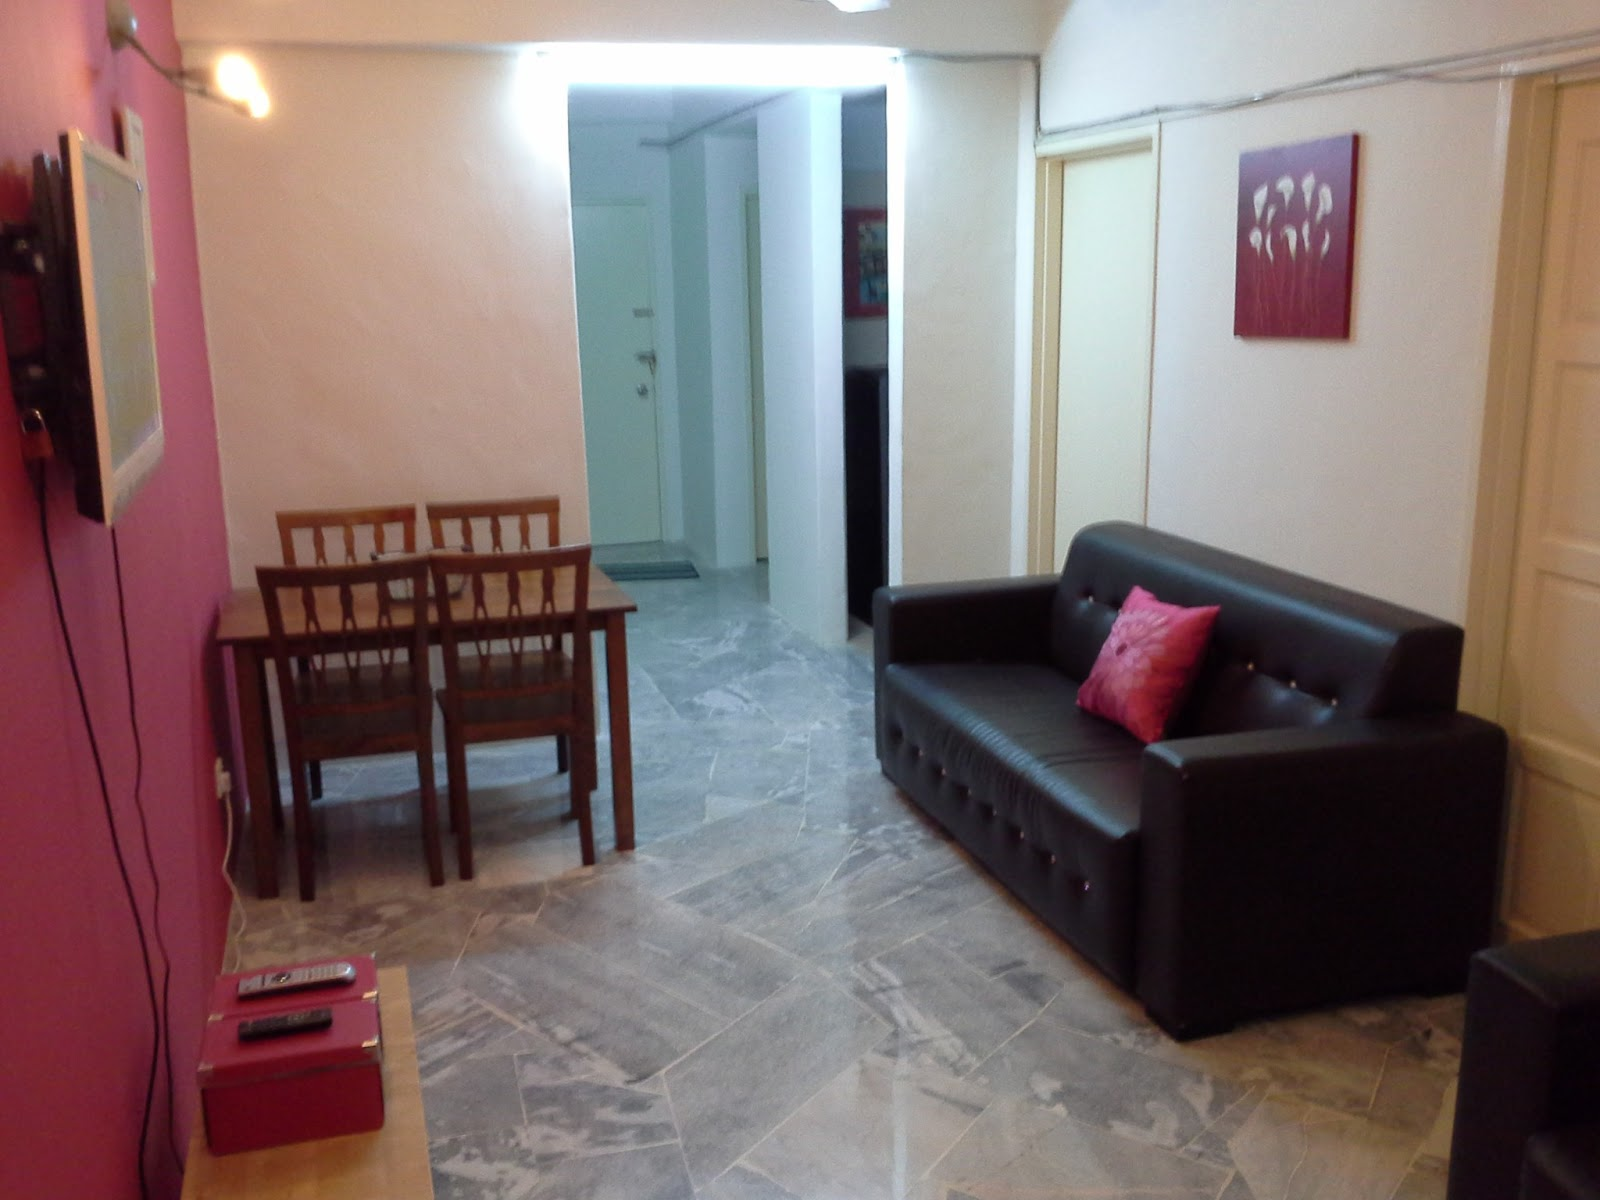 HOMESTAY BANGI REST2: Let's take a look!!! .and stay in the comfort